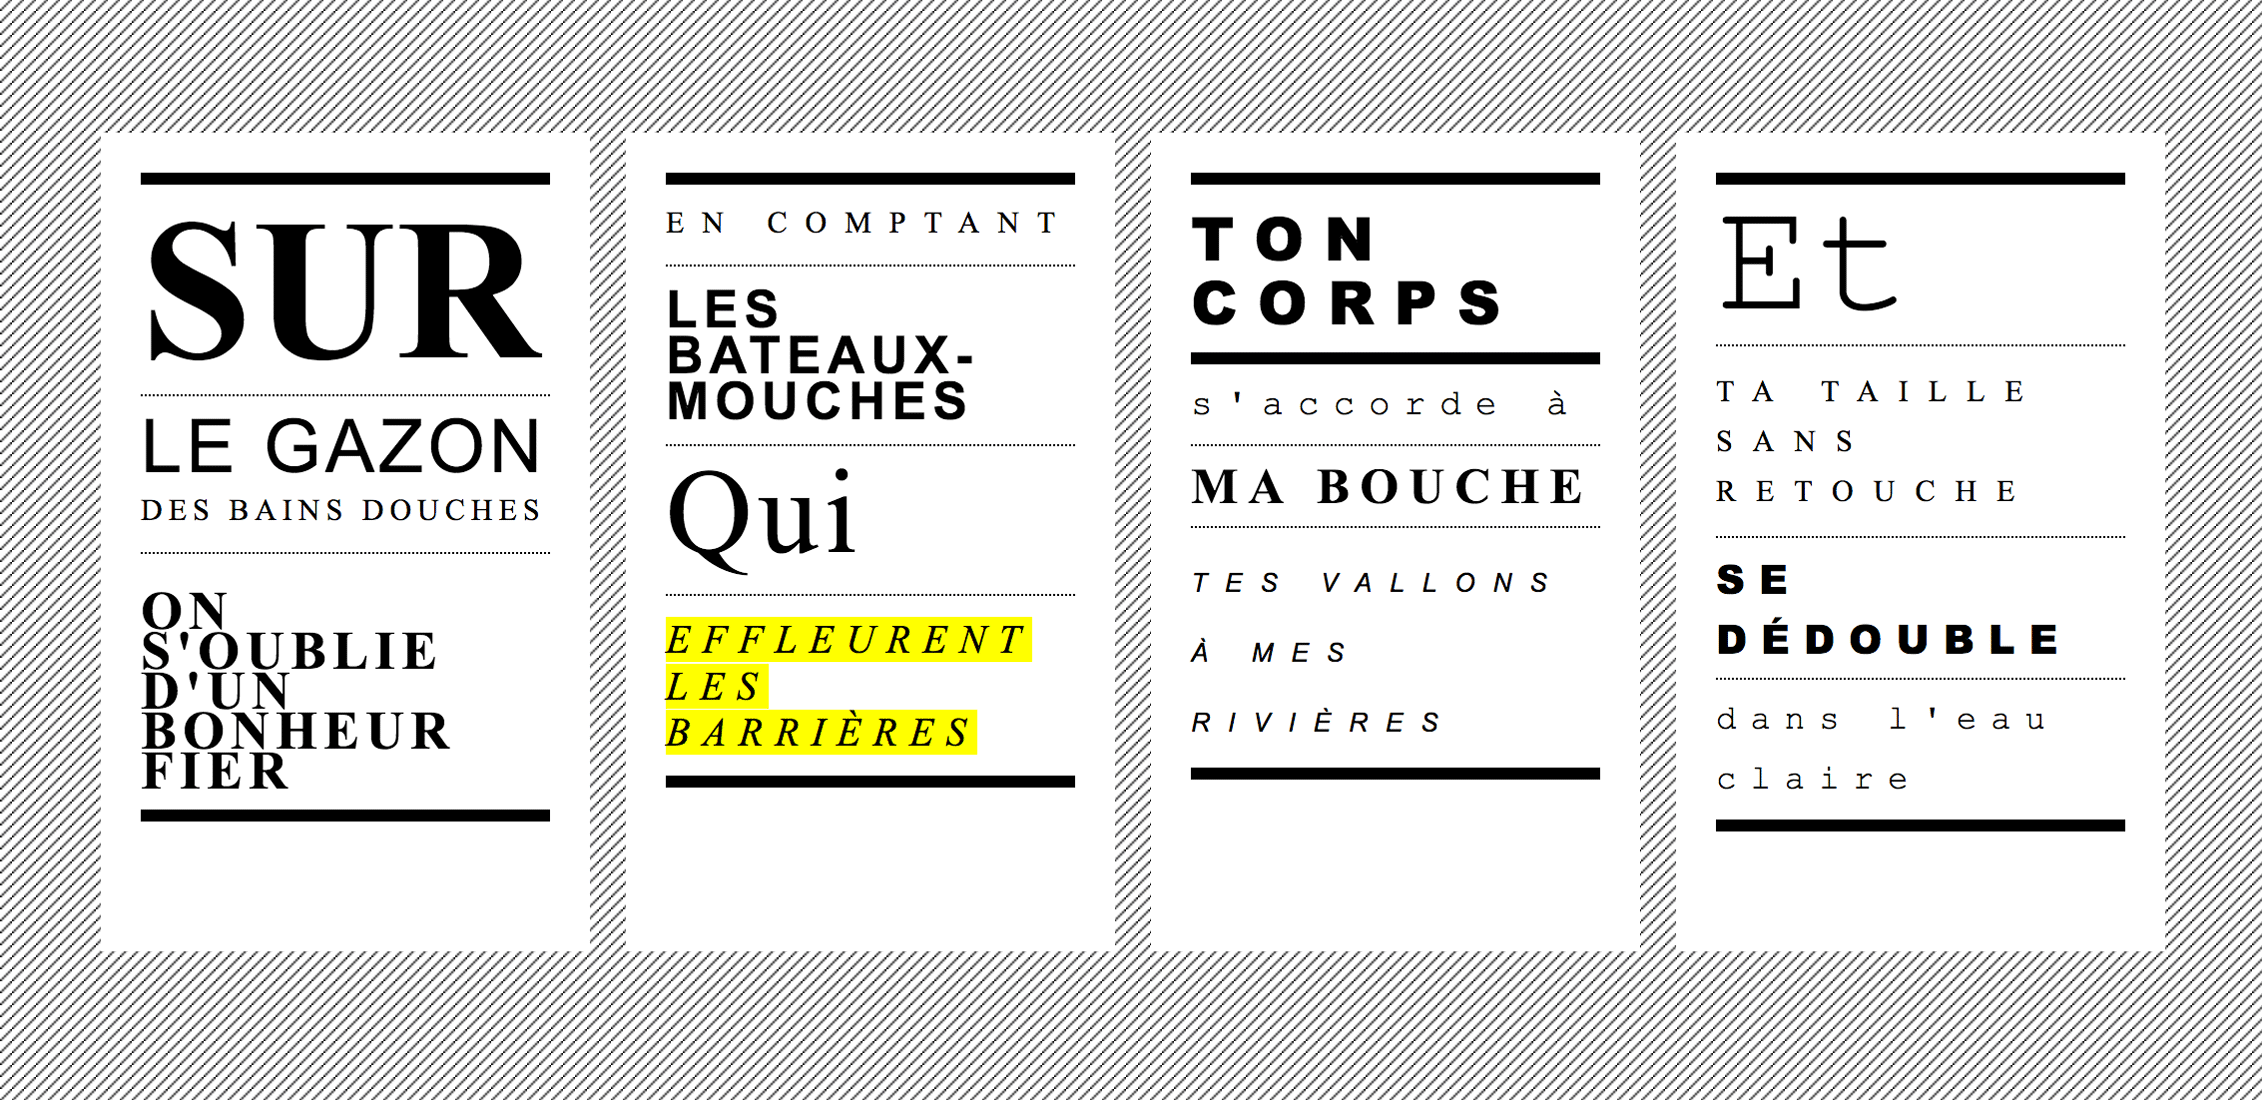 Compartiment fumeurs, typography website, Arial, Times New Roman, Courier New, music